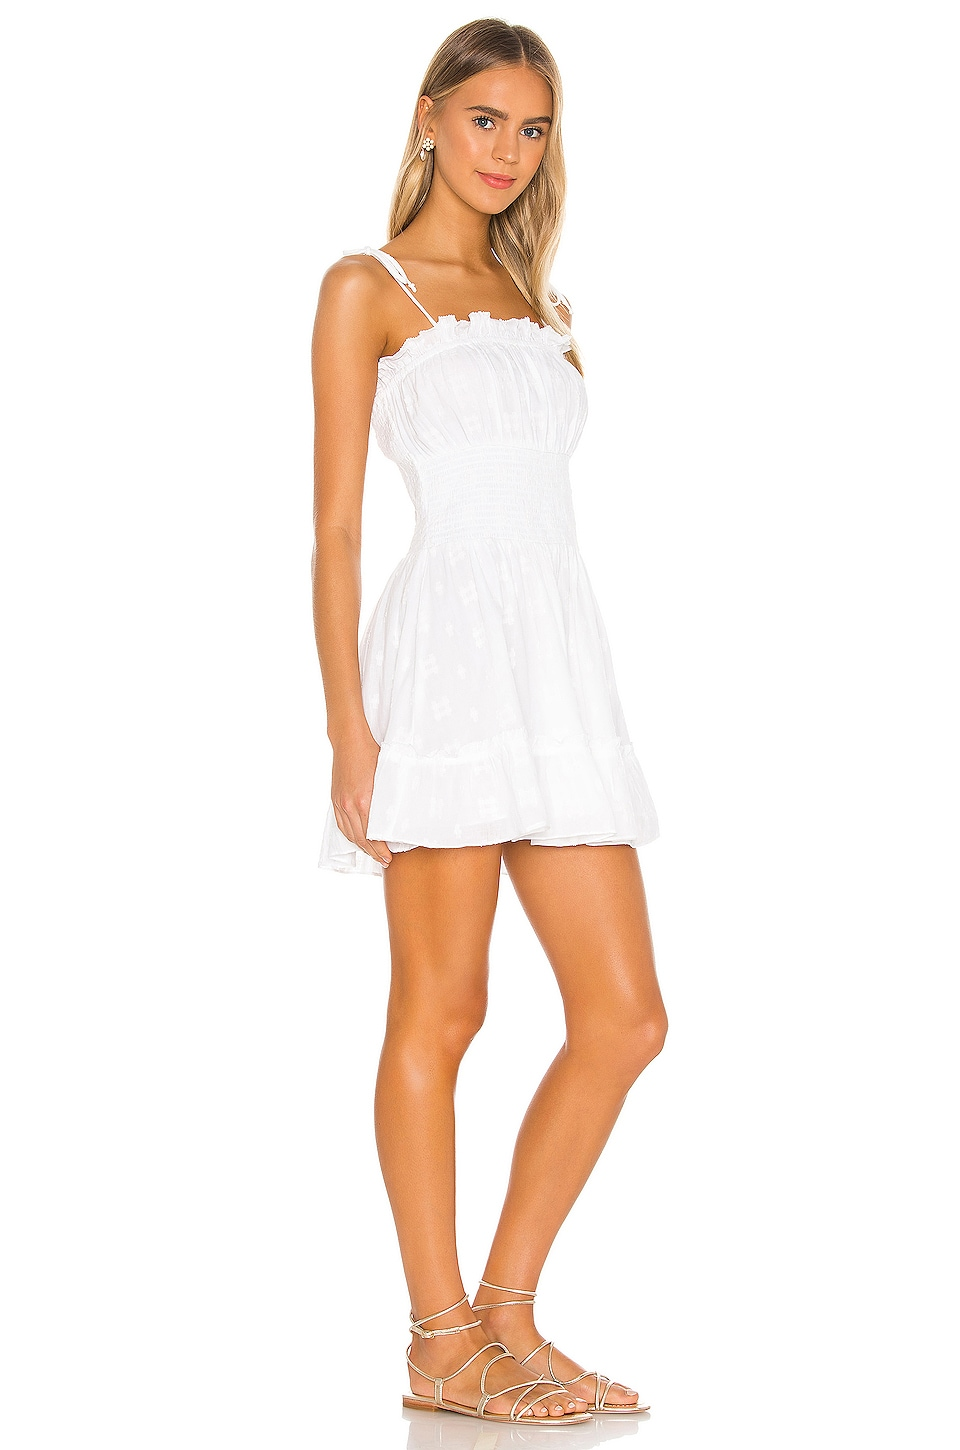 Marrakesh Mini Dress, view 2, click to view large image.